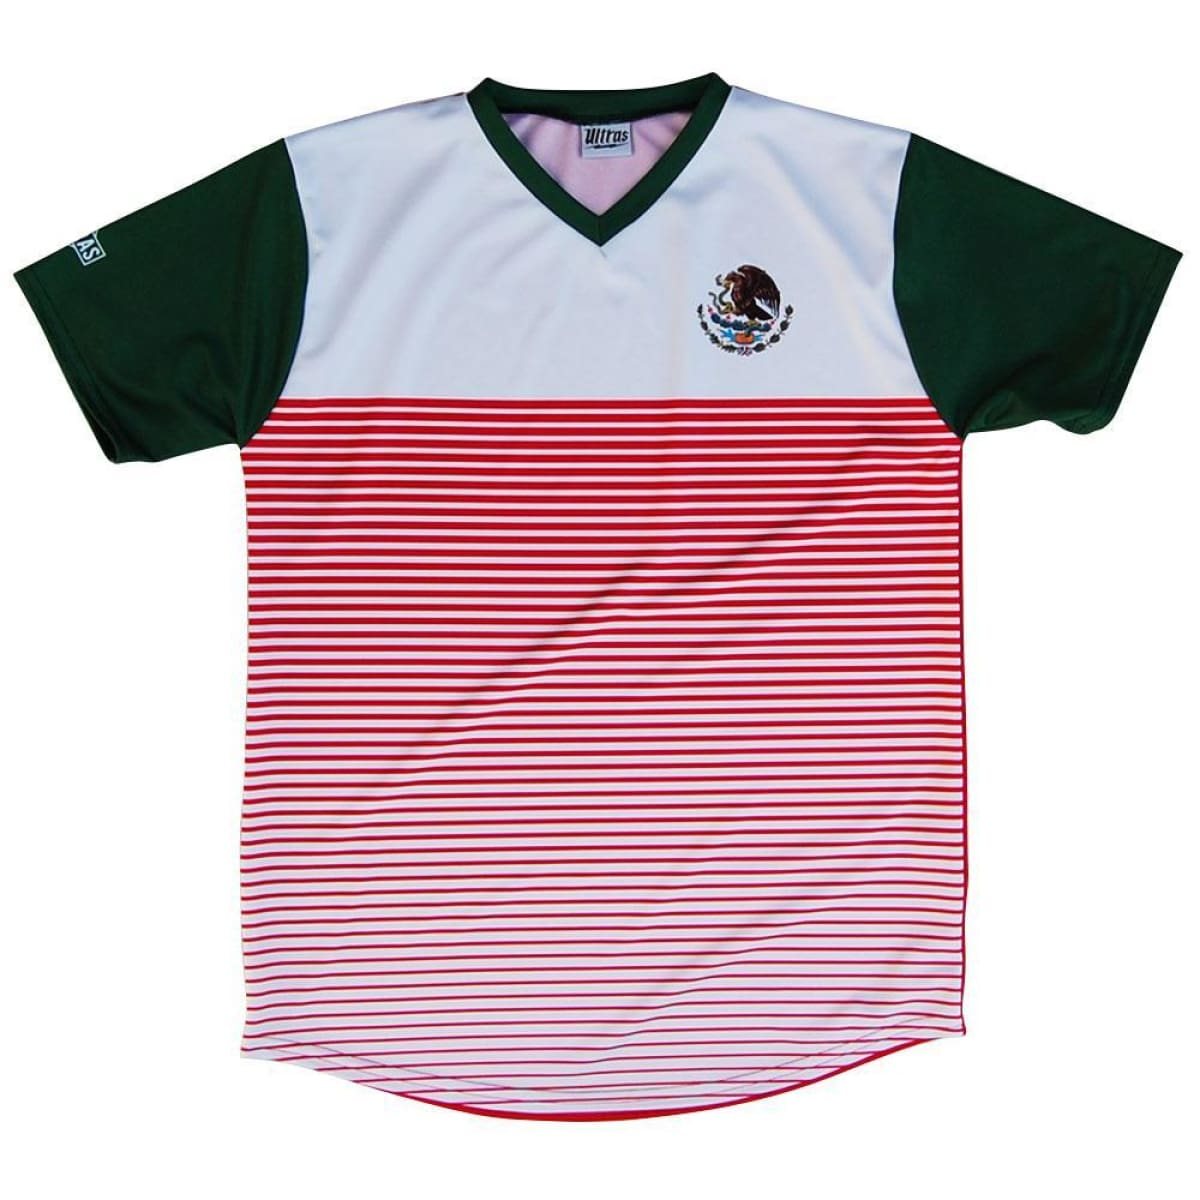 Mexico Rise Ultras Soccer Jersey - Red / Toddler 1 / No - Soccer Jersey